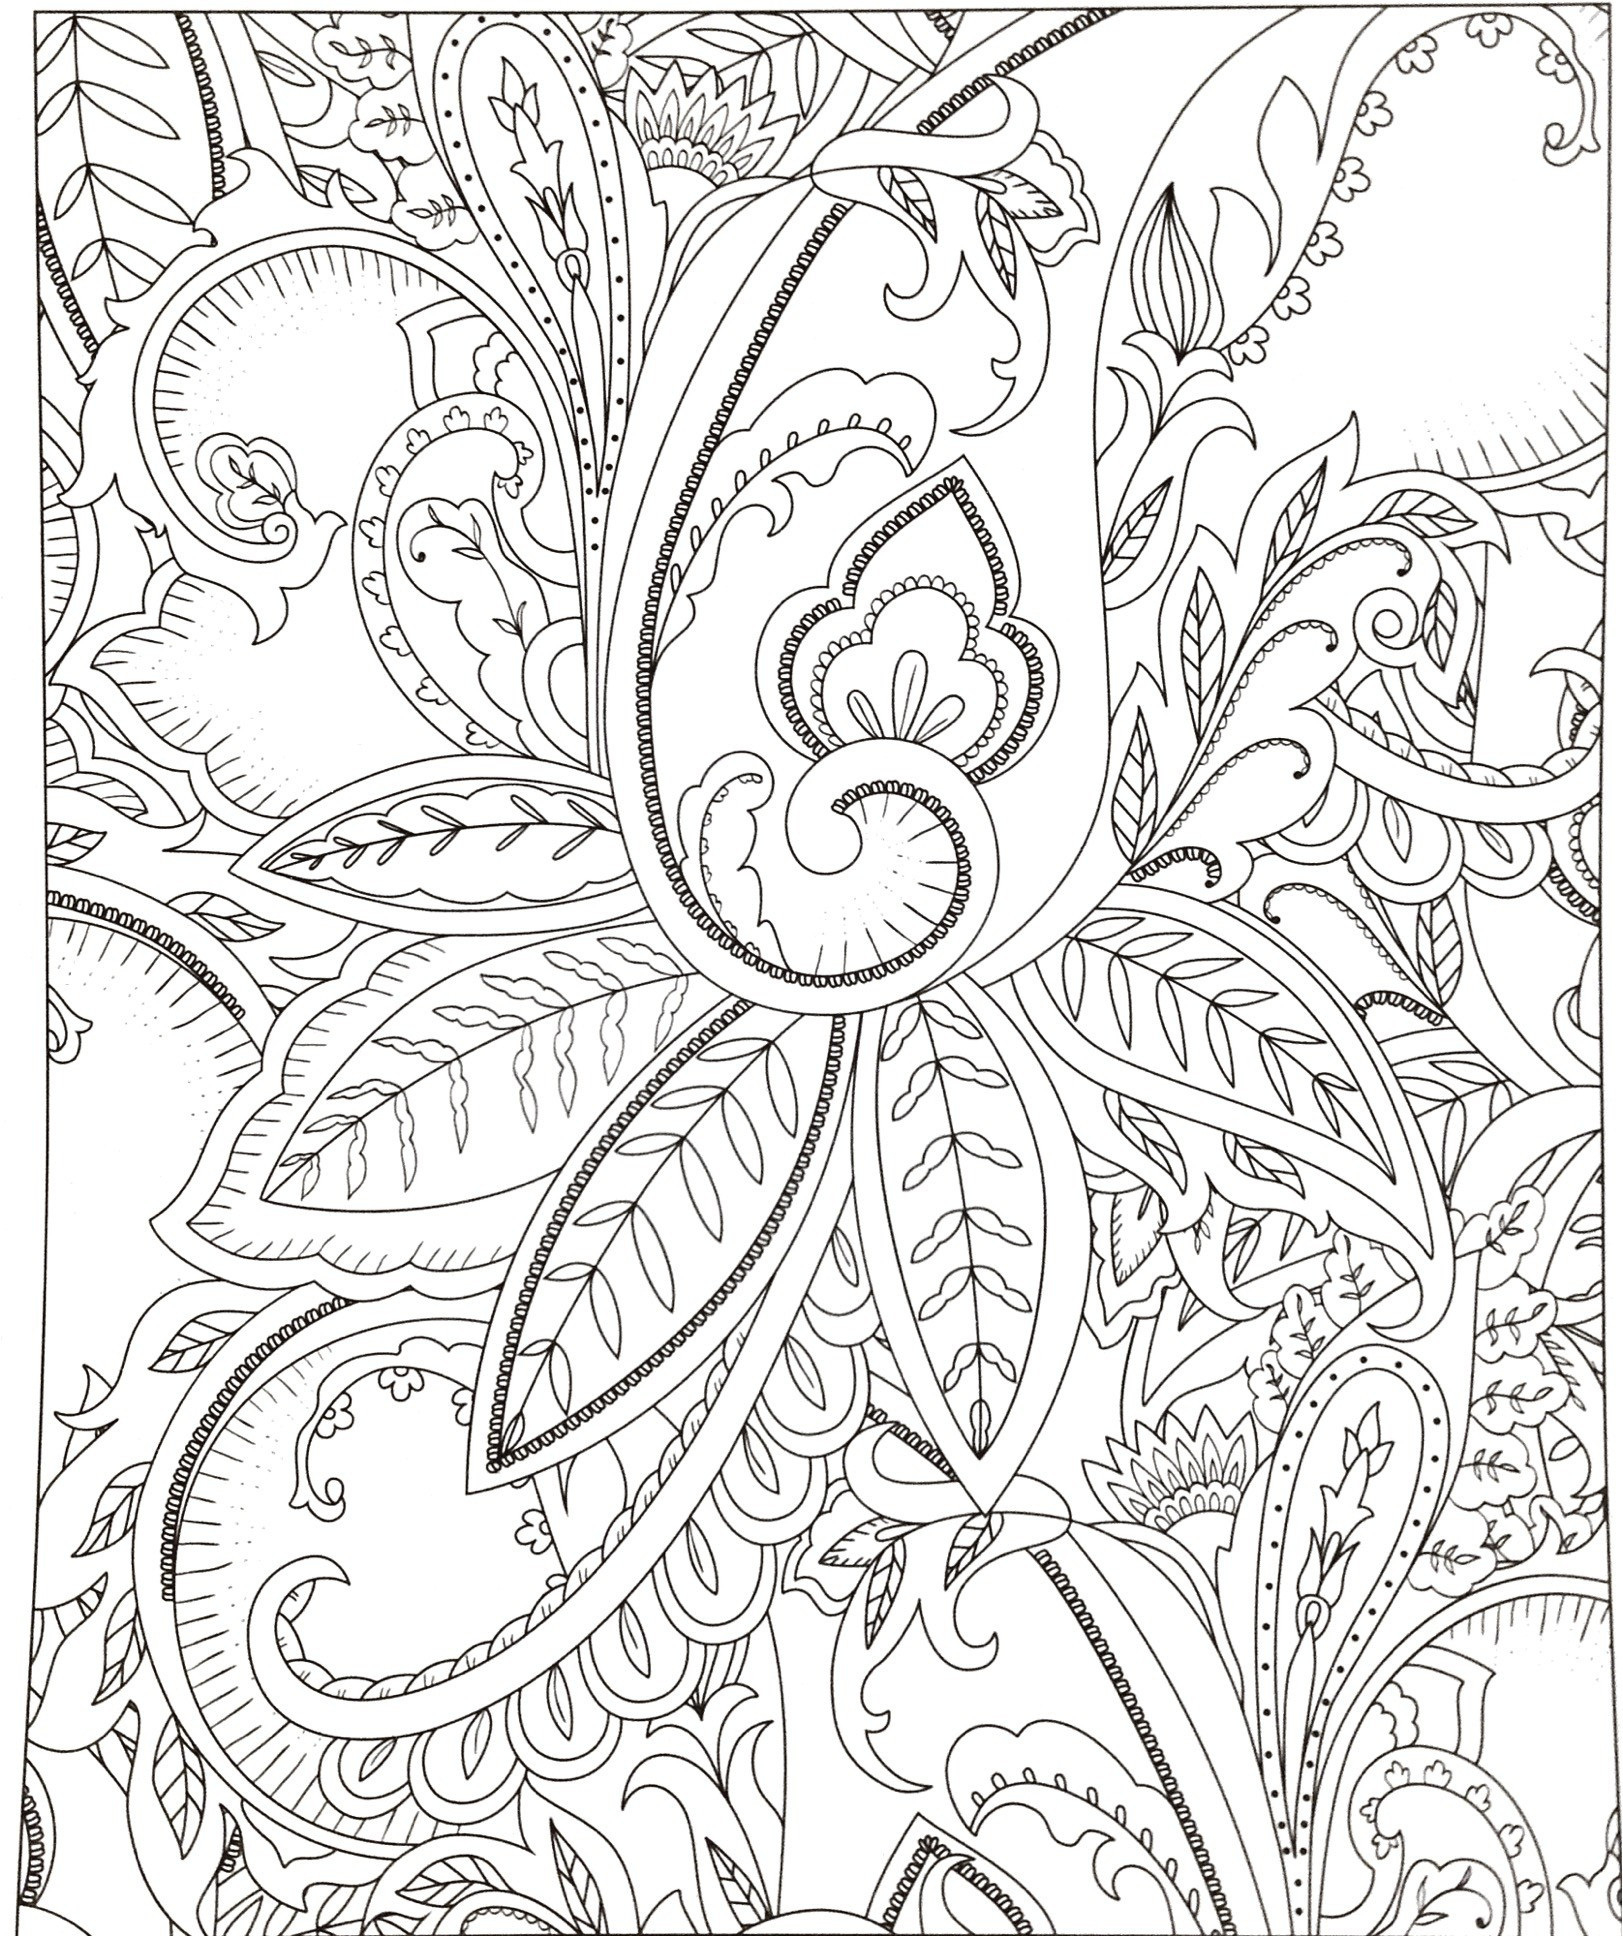 Letter B Coloring Pages  Printable 16a - To print for your project